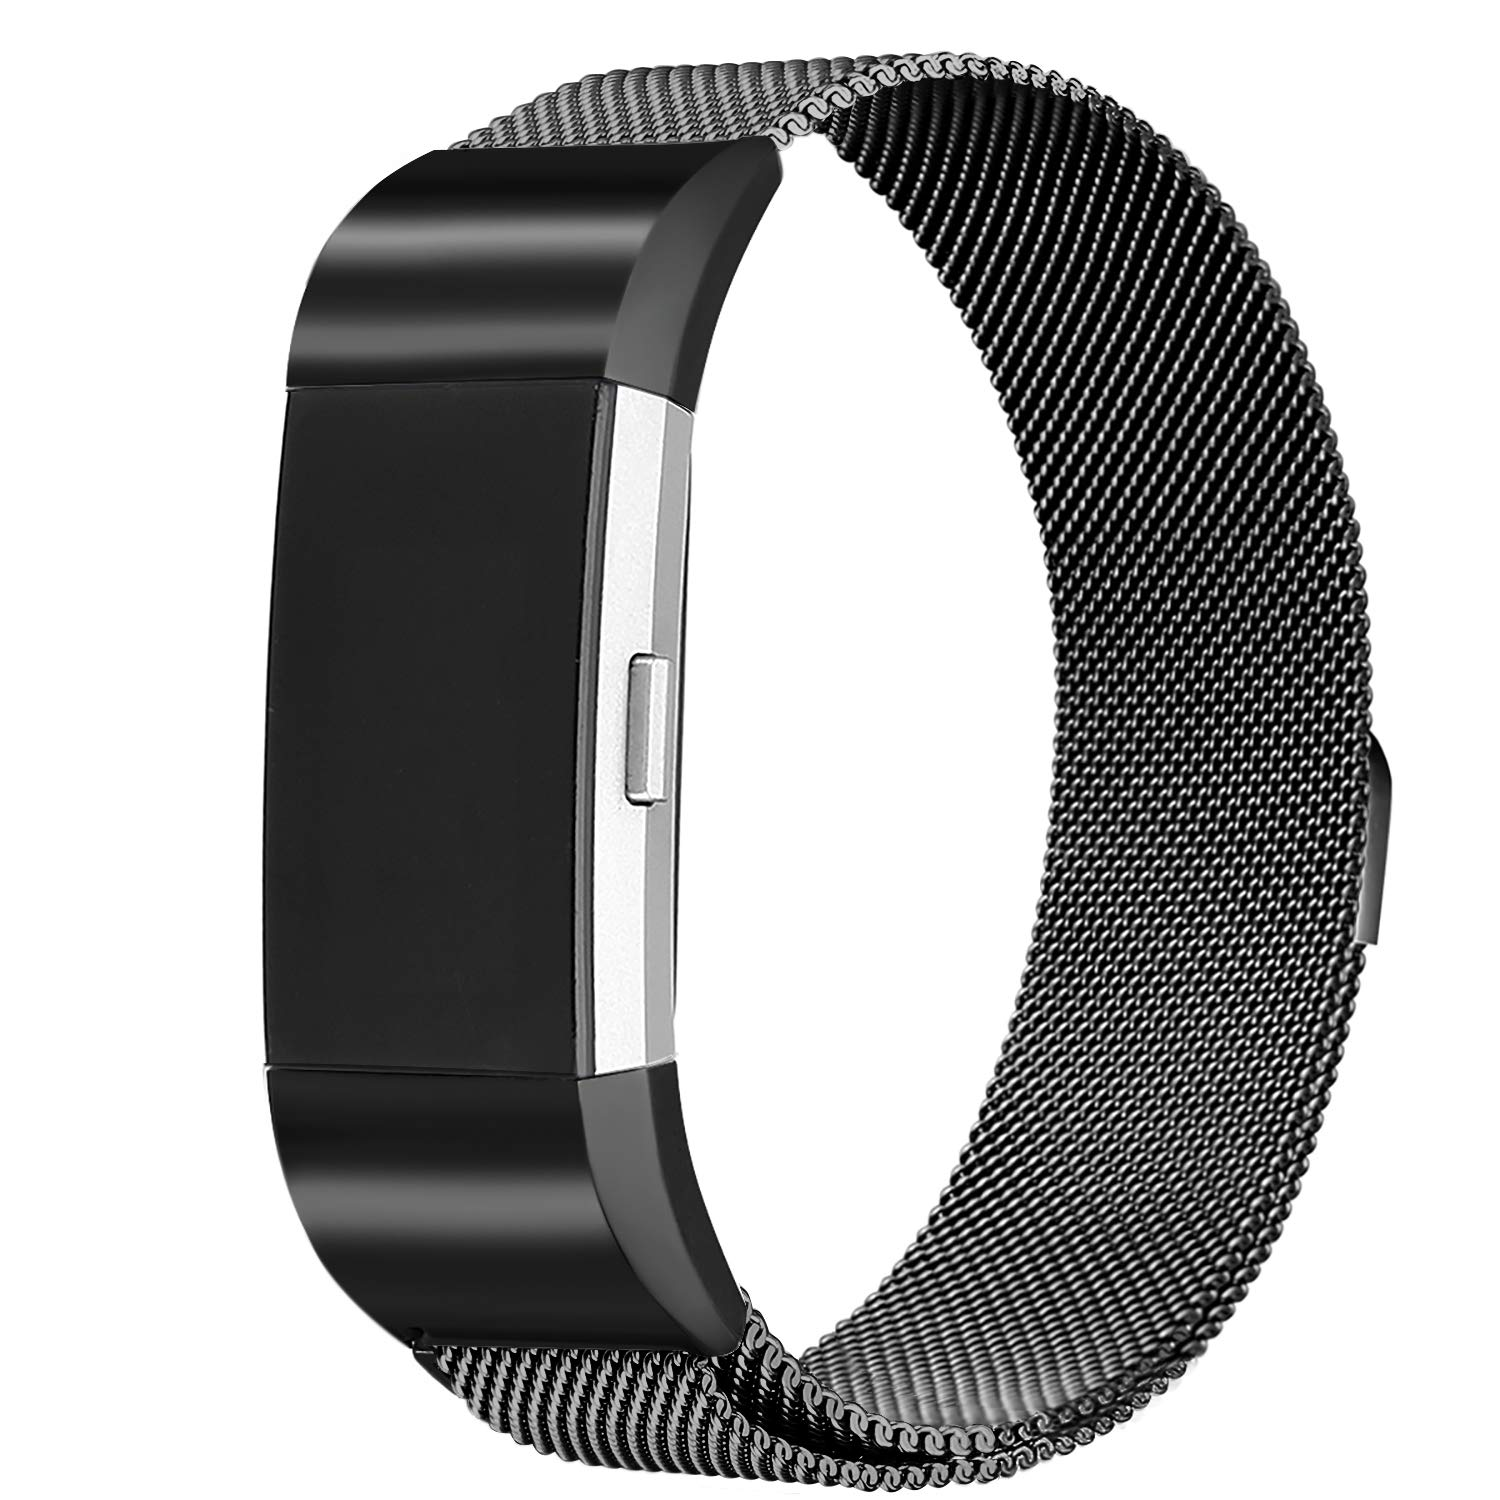 bayite Milanese Loop Bands Compatible Fitbit Charge 2, Stainless Steel Magnet Lock Metal, Black Large